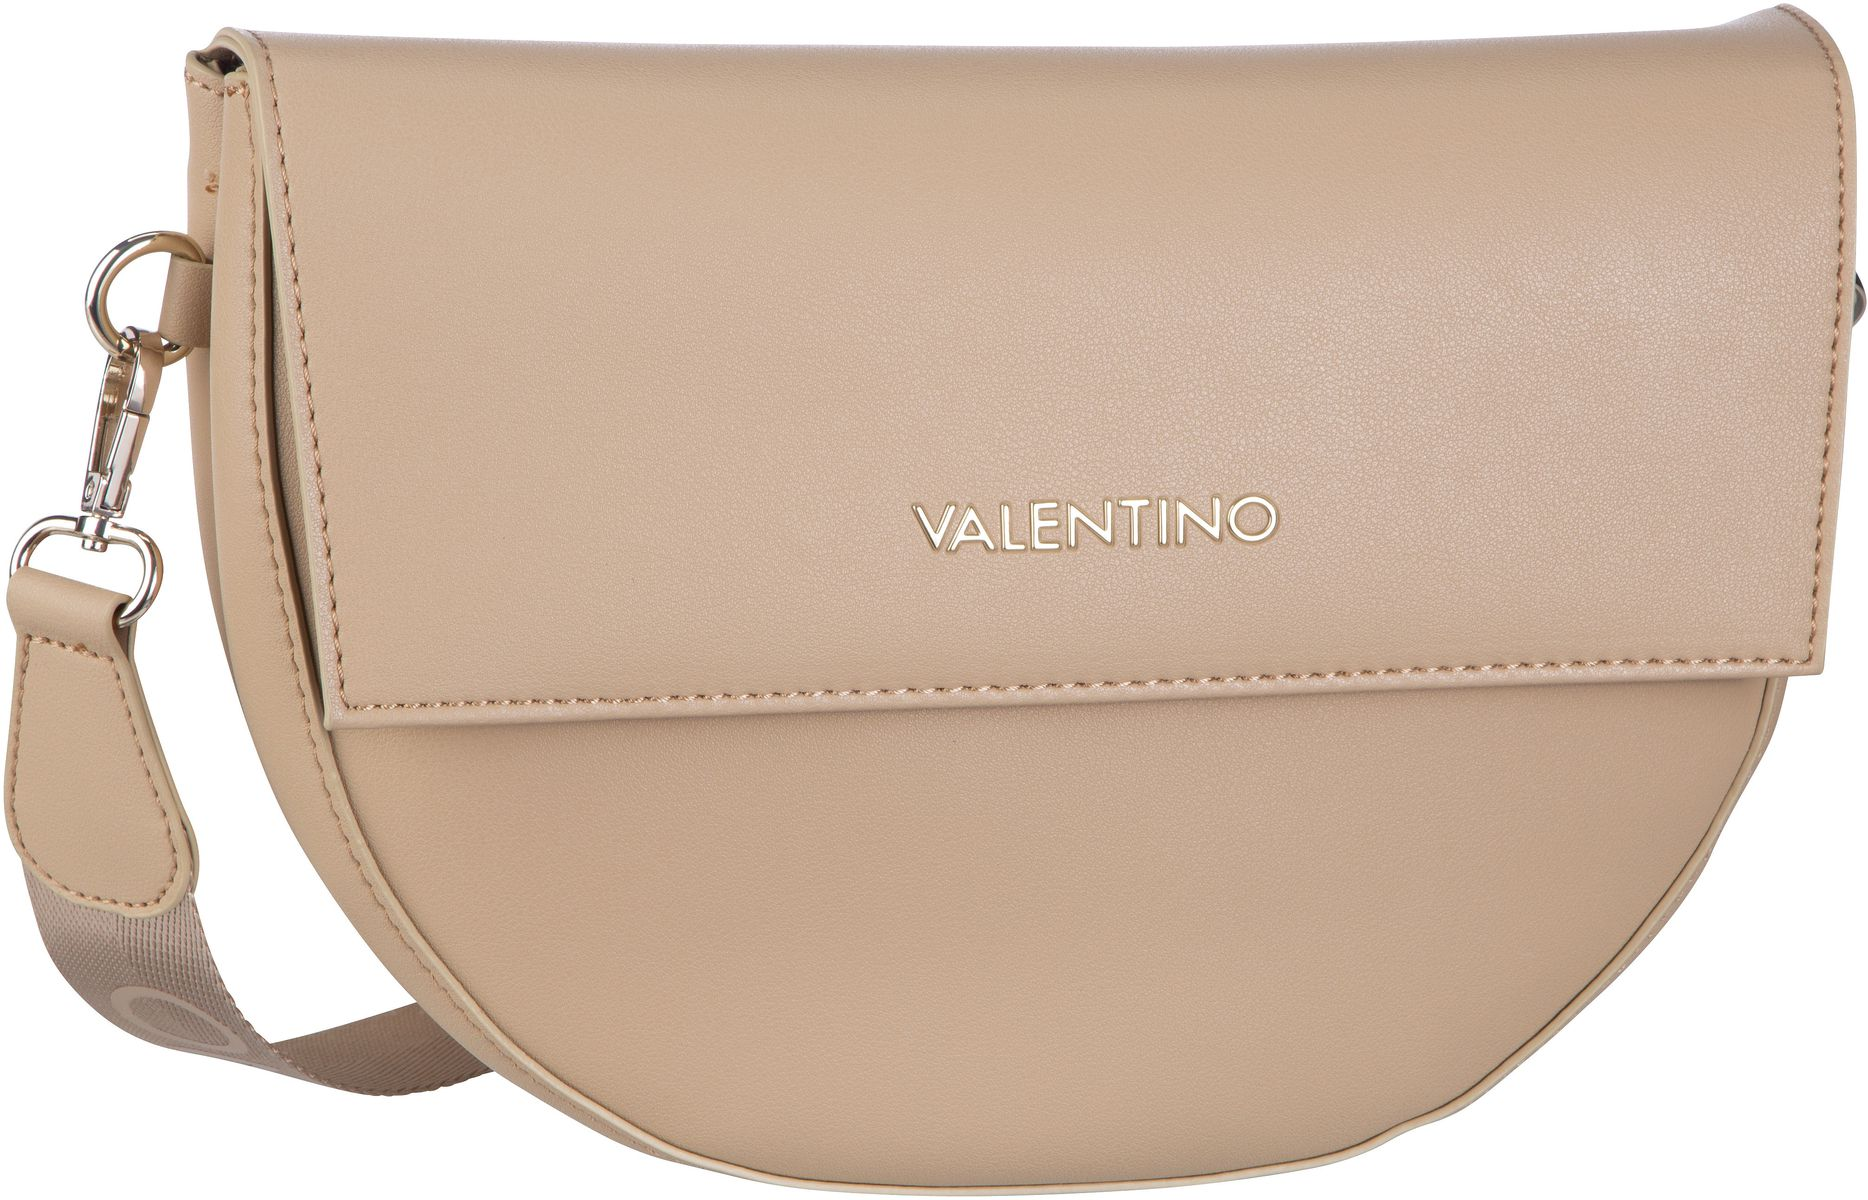 Bags Umhängetasche Bigfoot Pattina J01 Beige